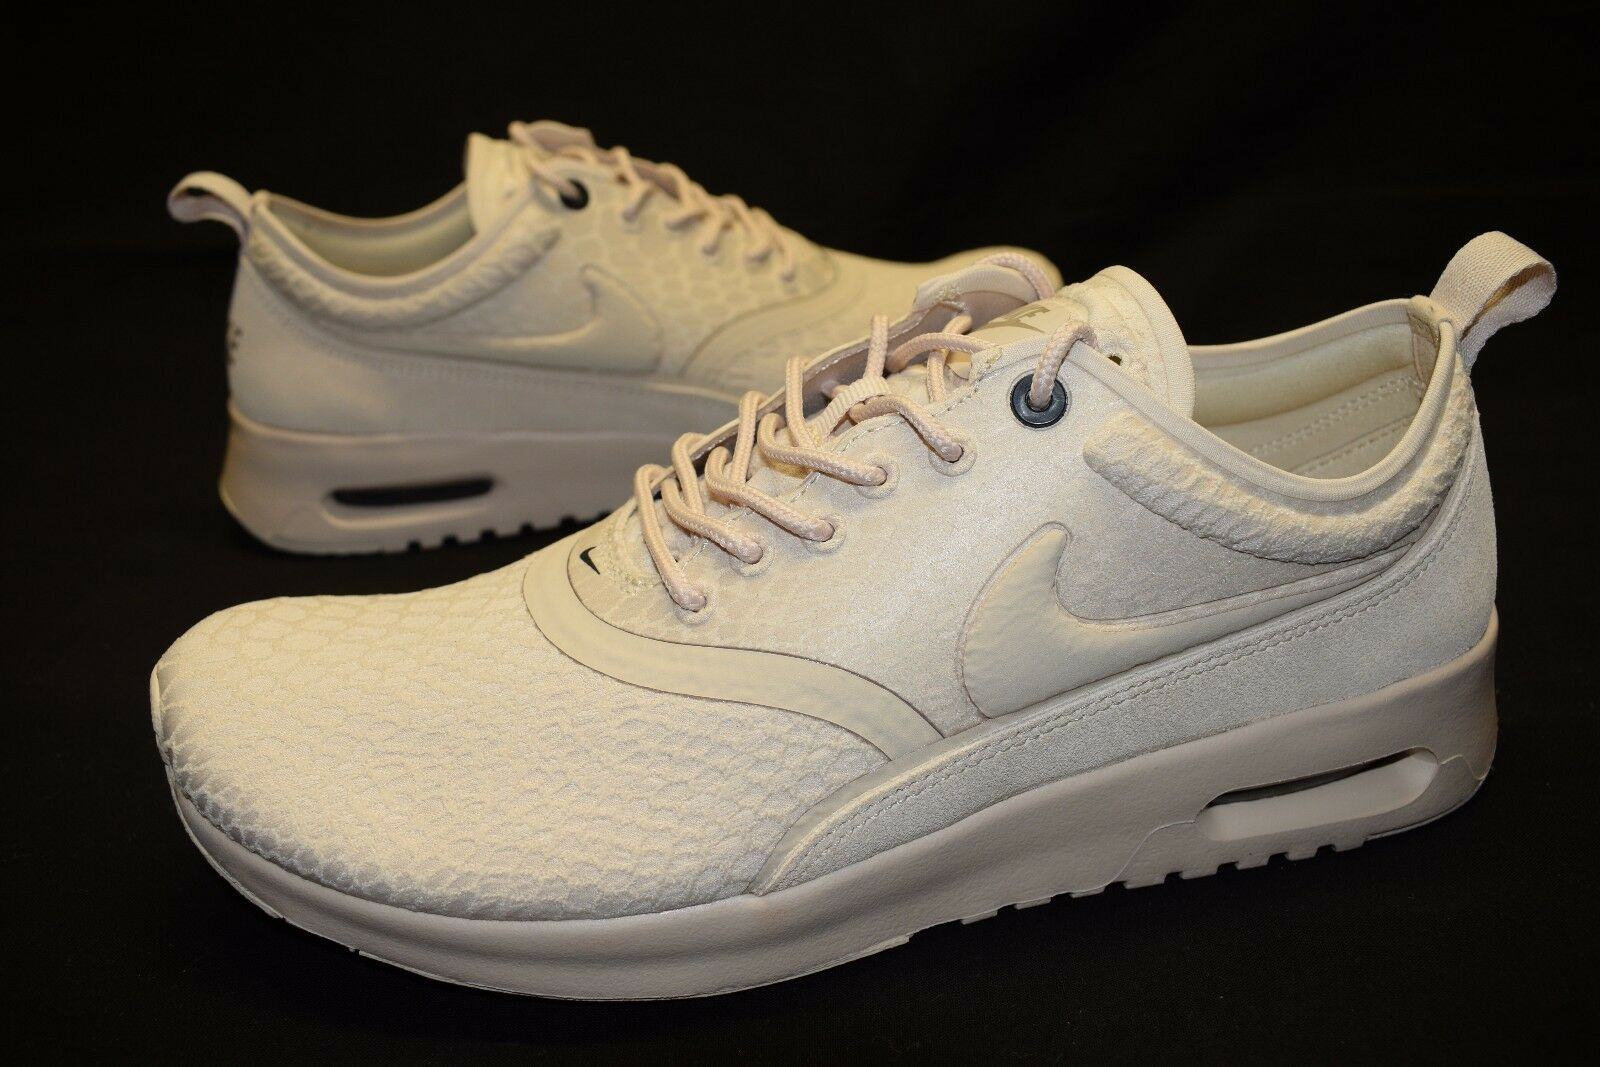 WMNS Nike Air Max Thea Ultra SE Oatmeal Women Running Shoes SNEAKERS 881118 100 9